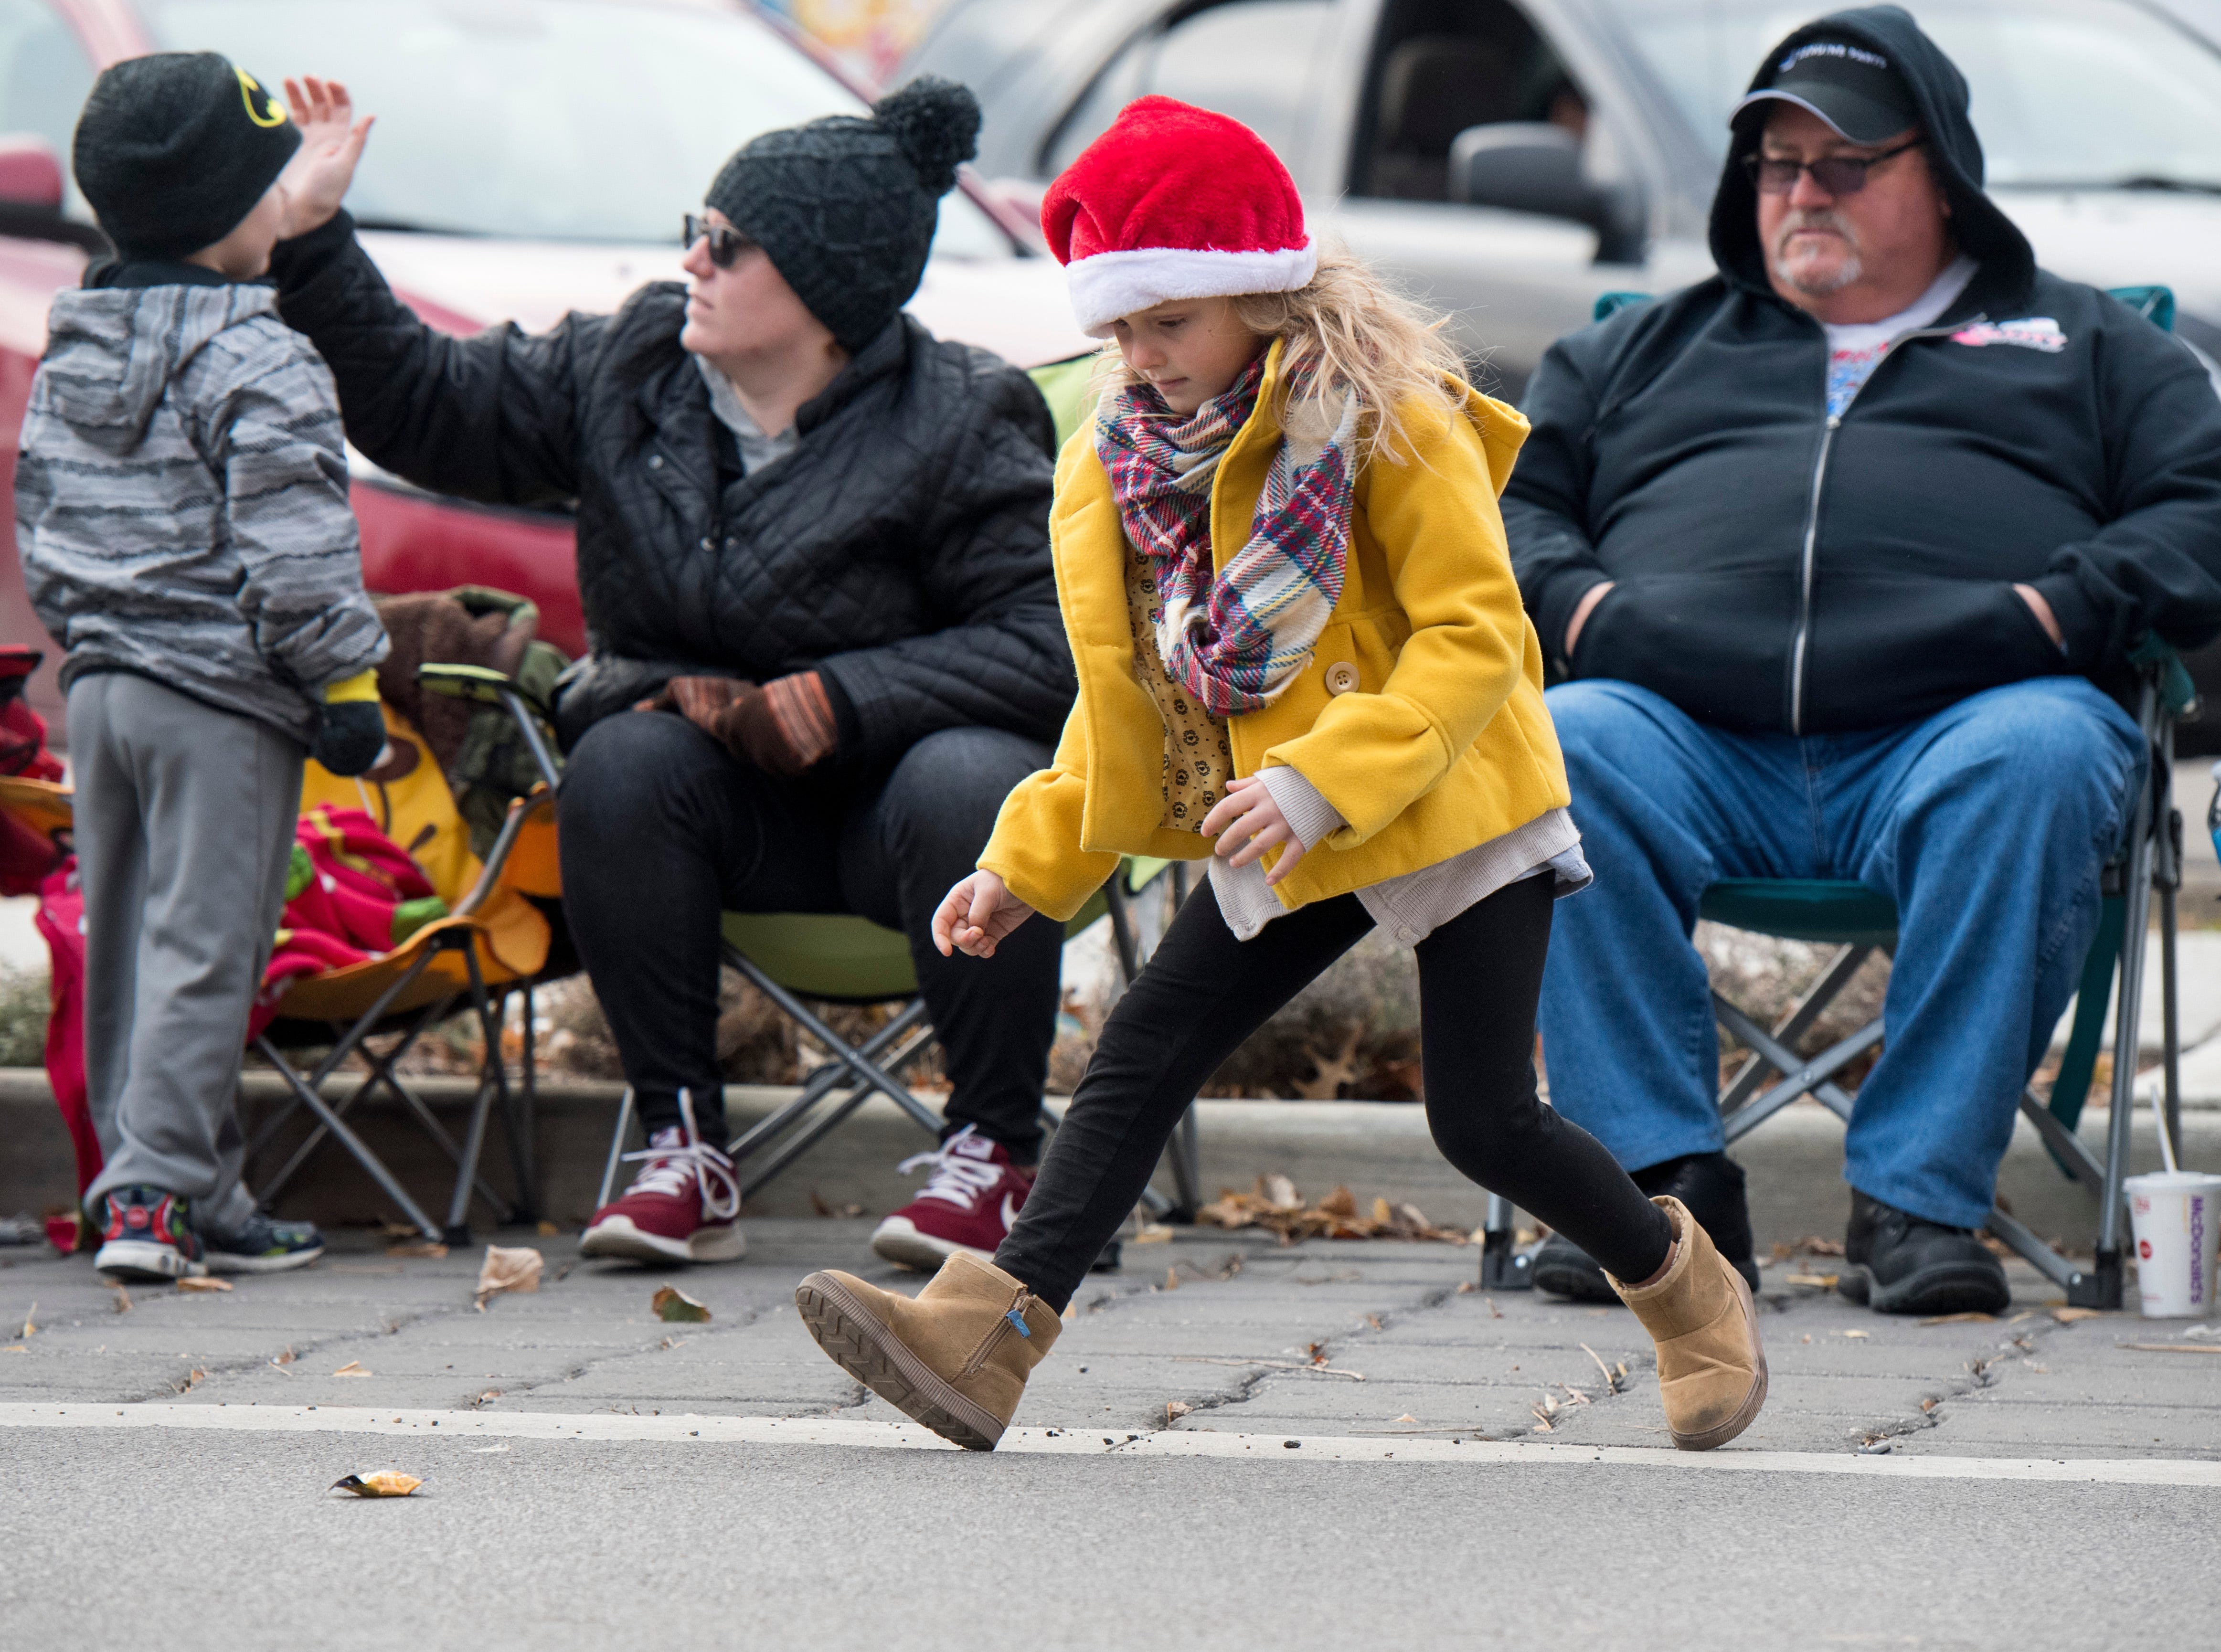 Lydia Brown, 6, runs after a piece of candy during Evansville's Christmas on North Main Parade, Sunday, Nov. 18, 2018.